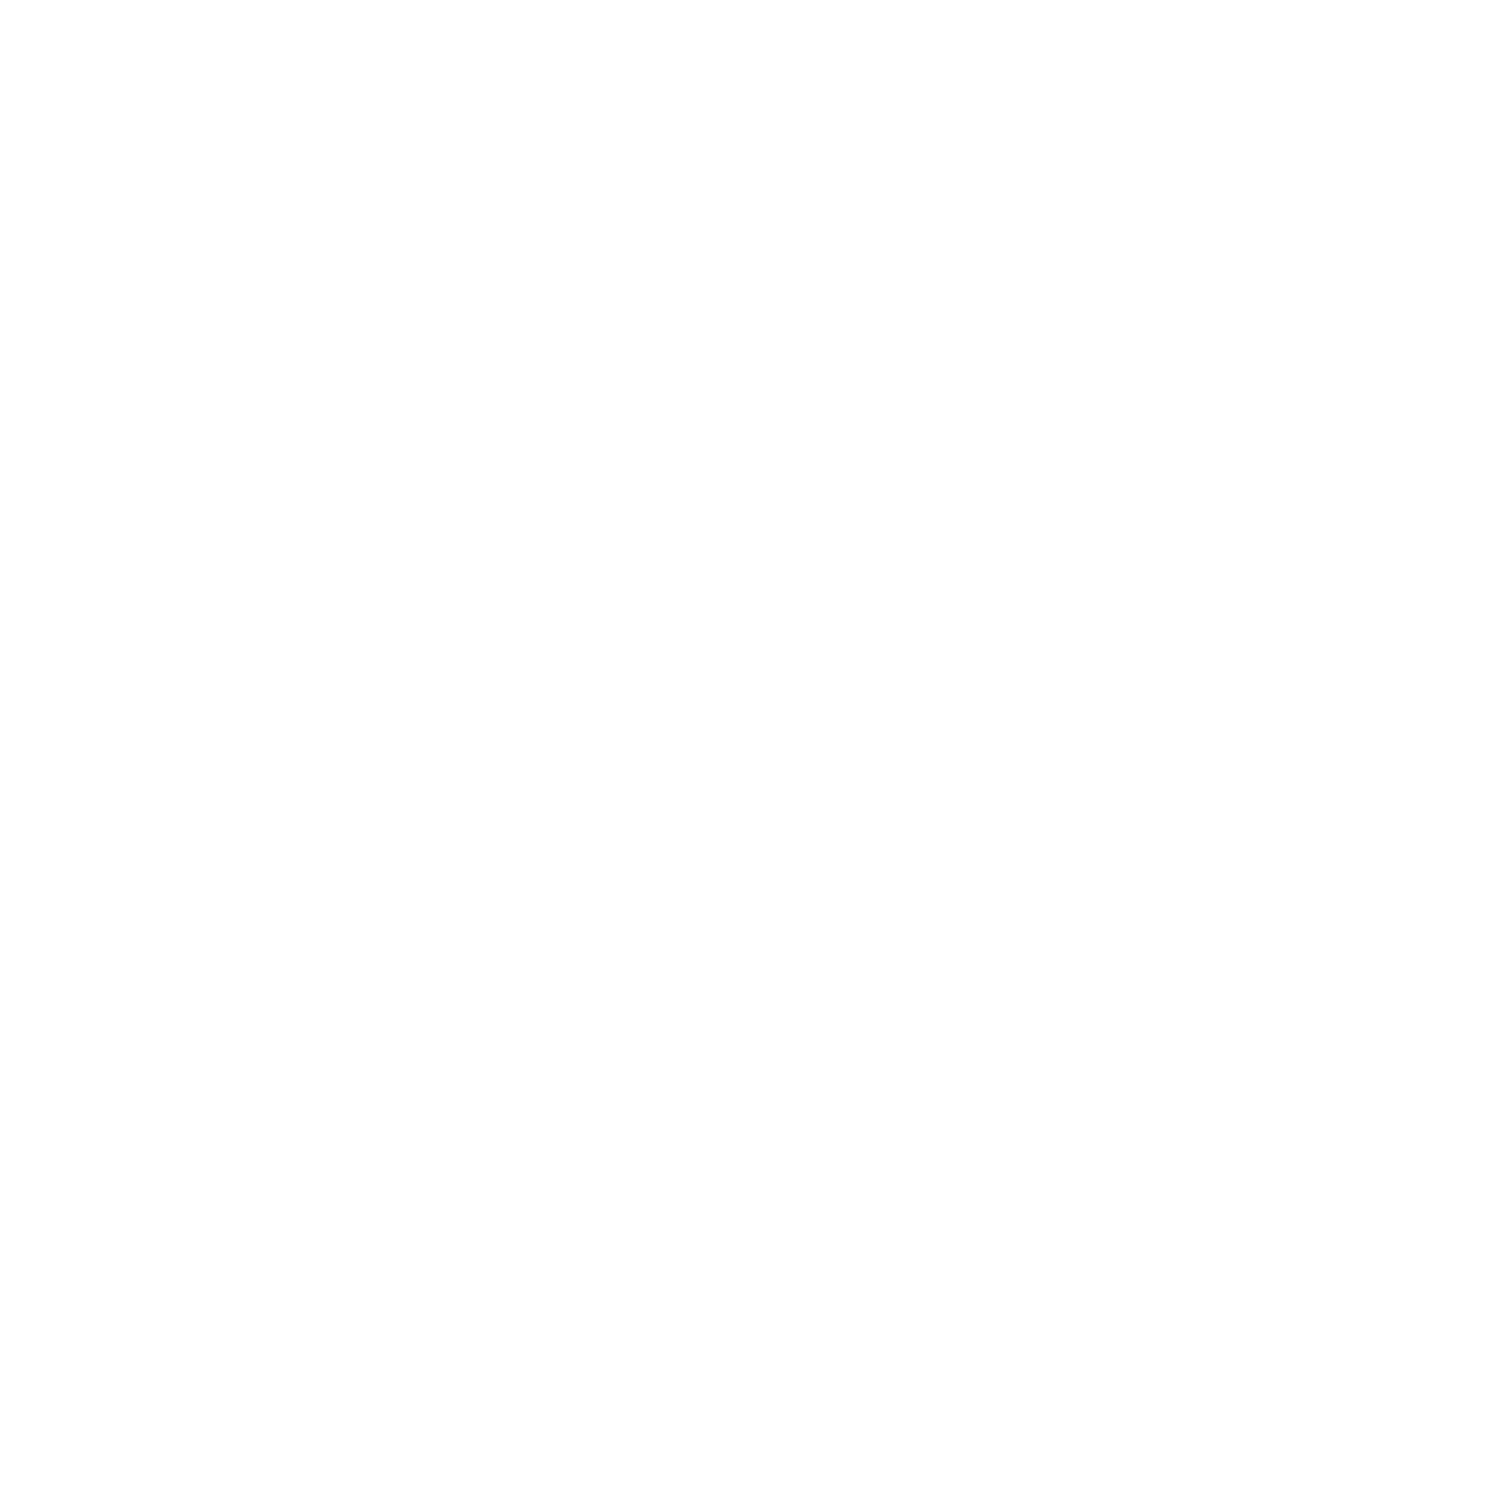 Valley Rally